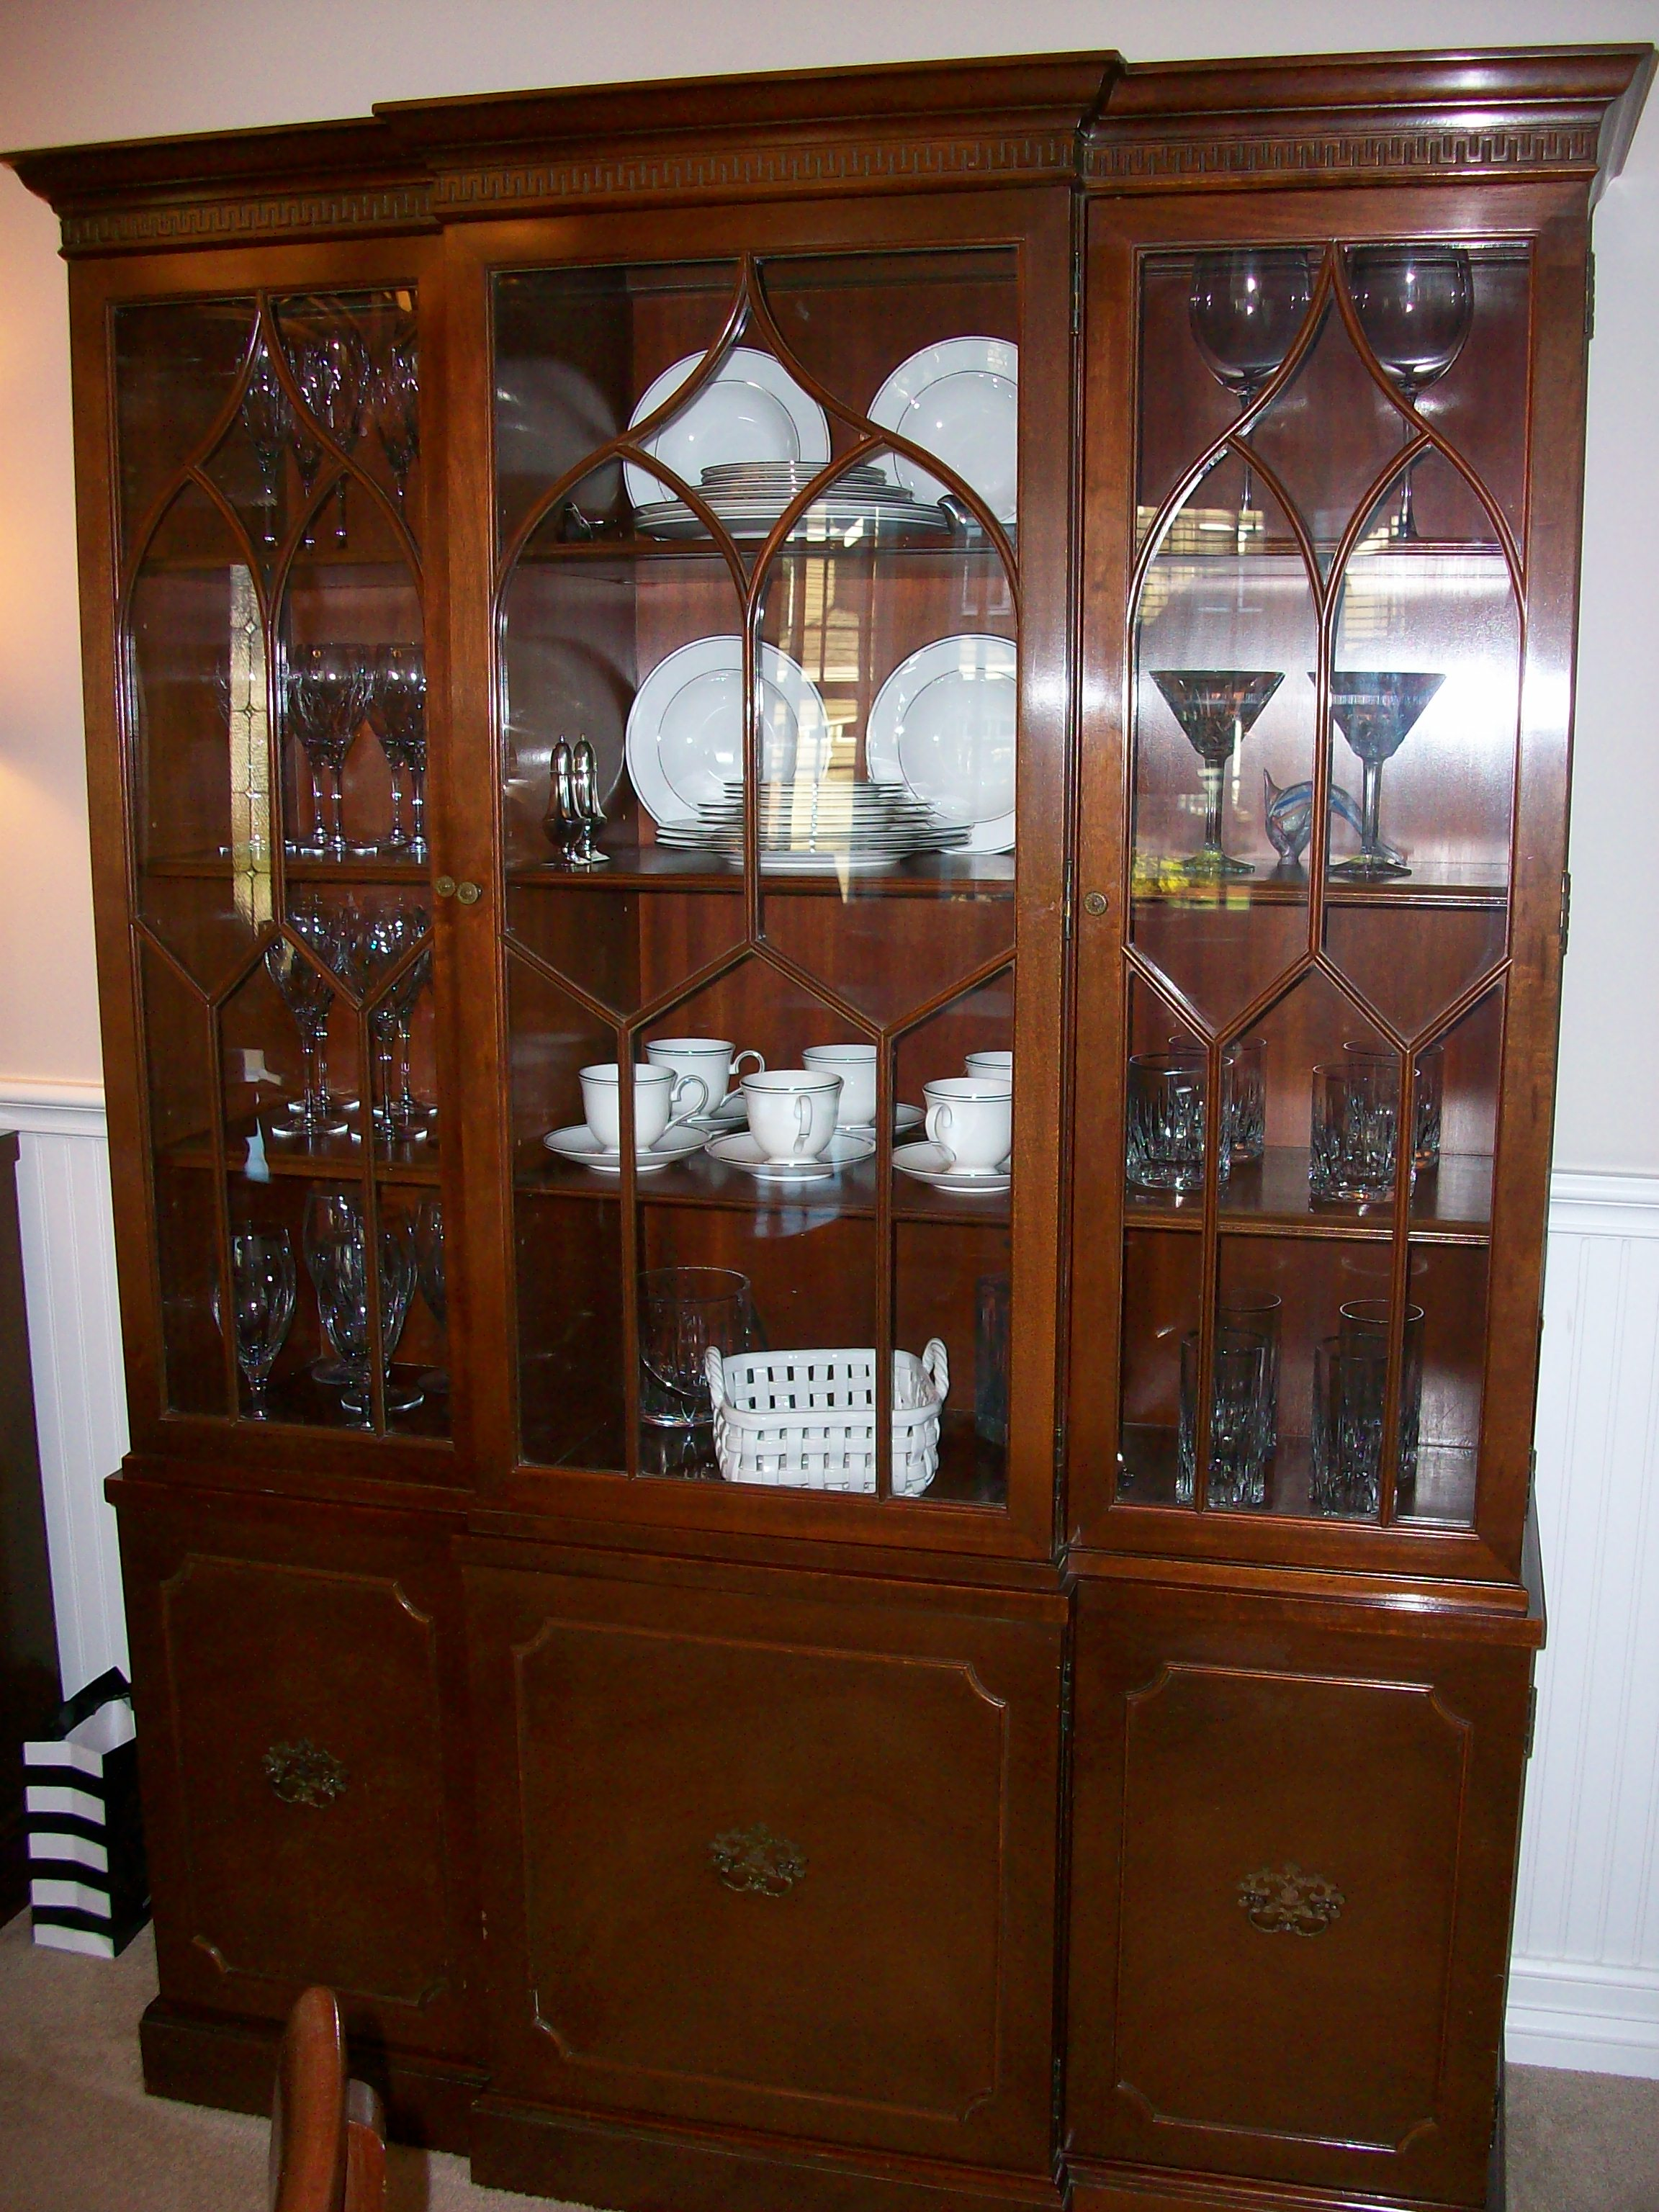 Rway 10 Piece Dining Room Set Antique Appraisal